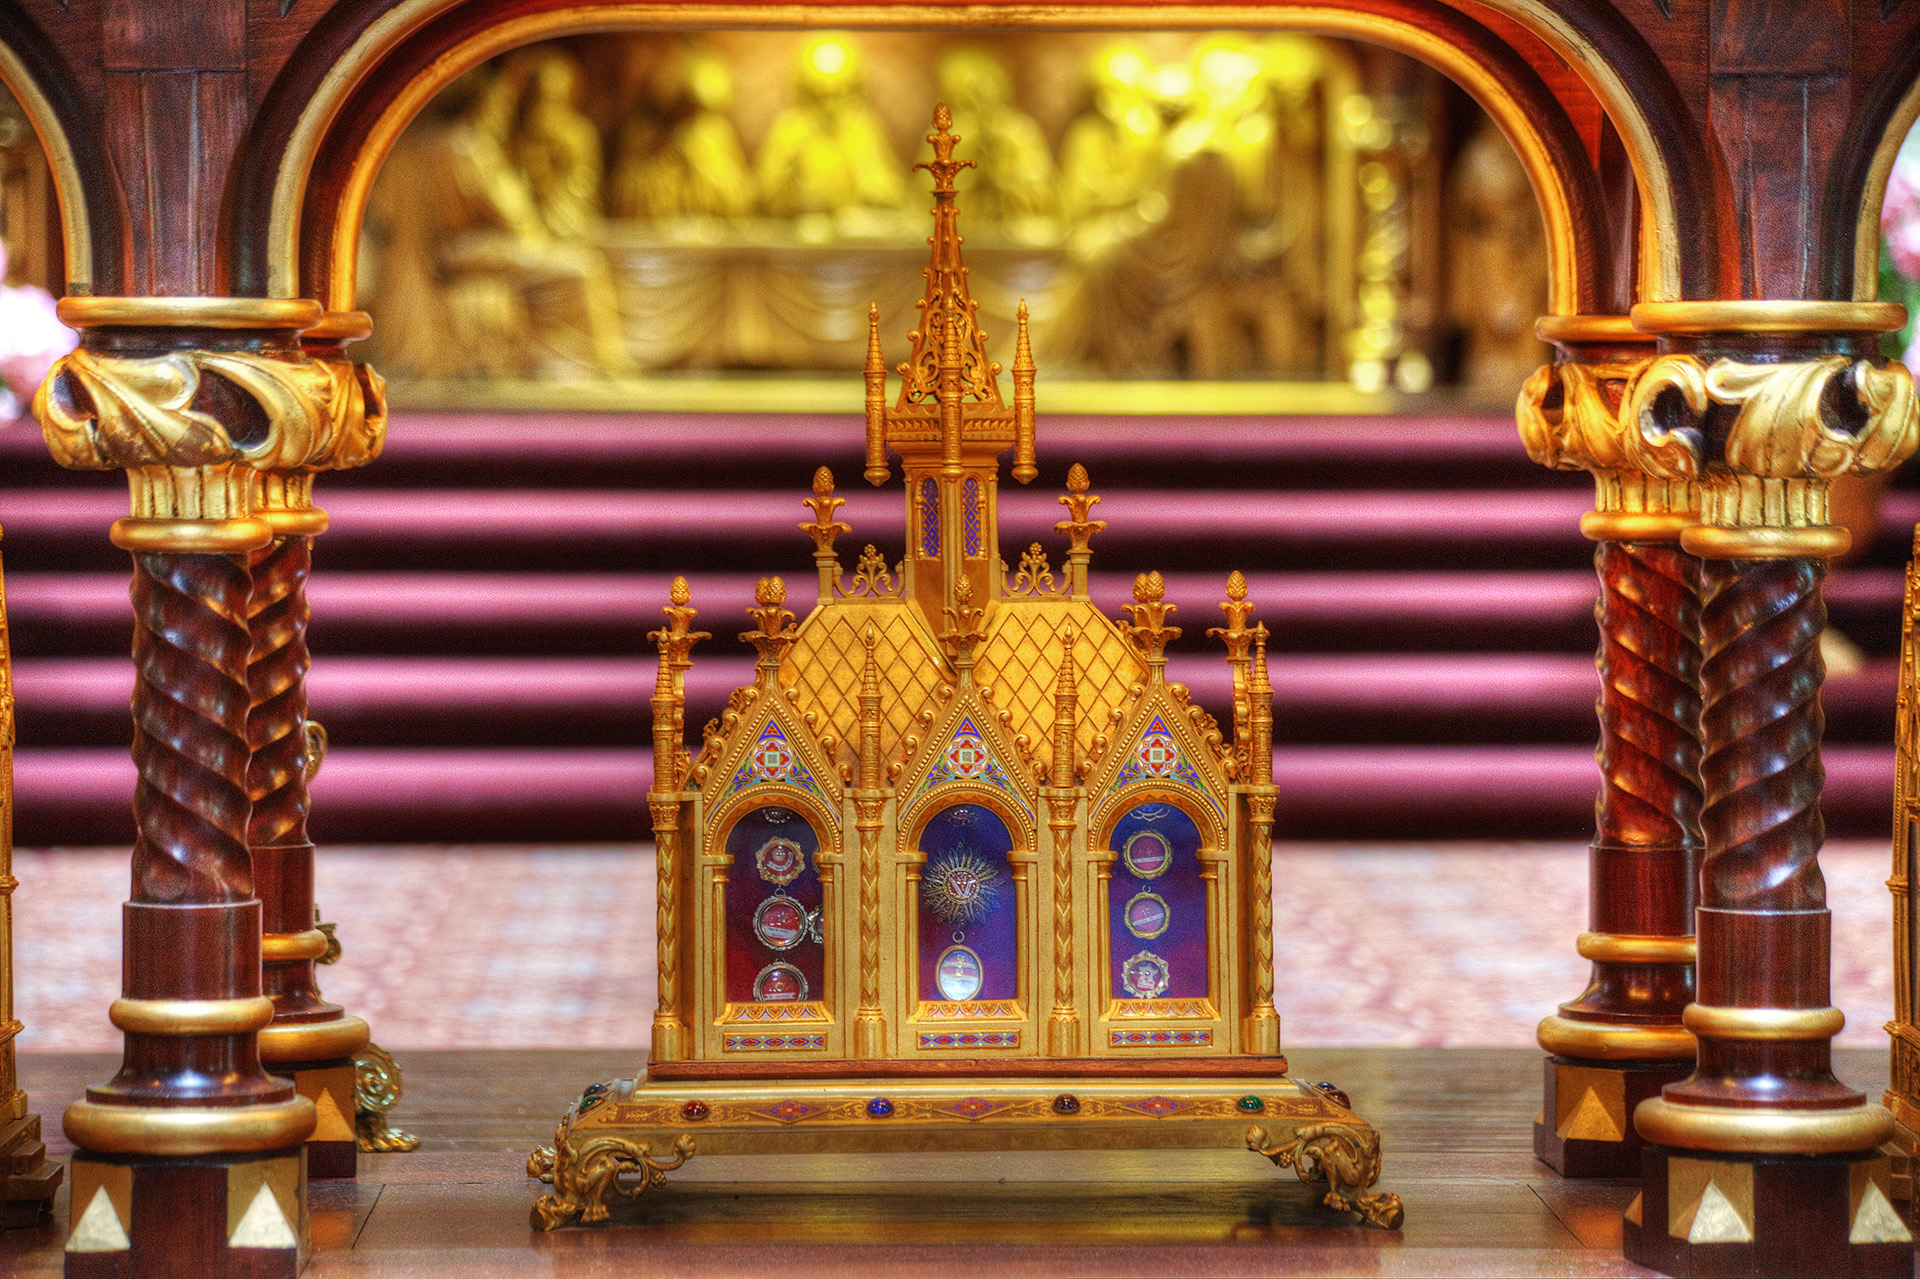 Reliquaries before the Altar.